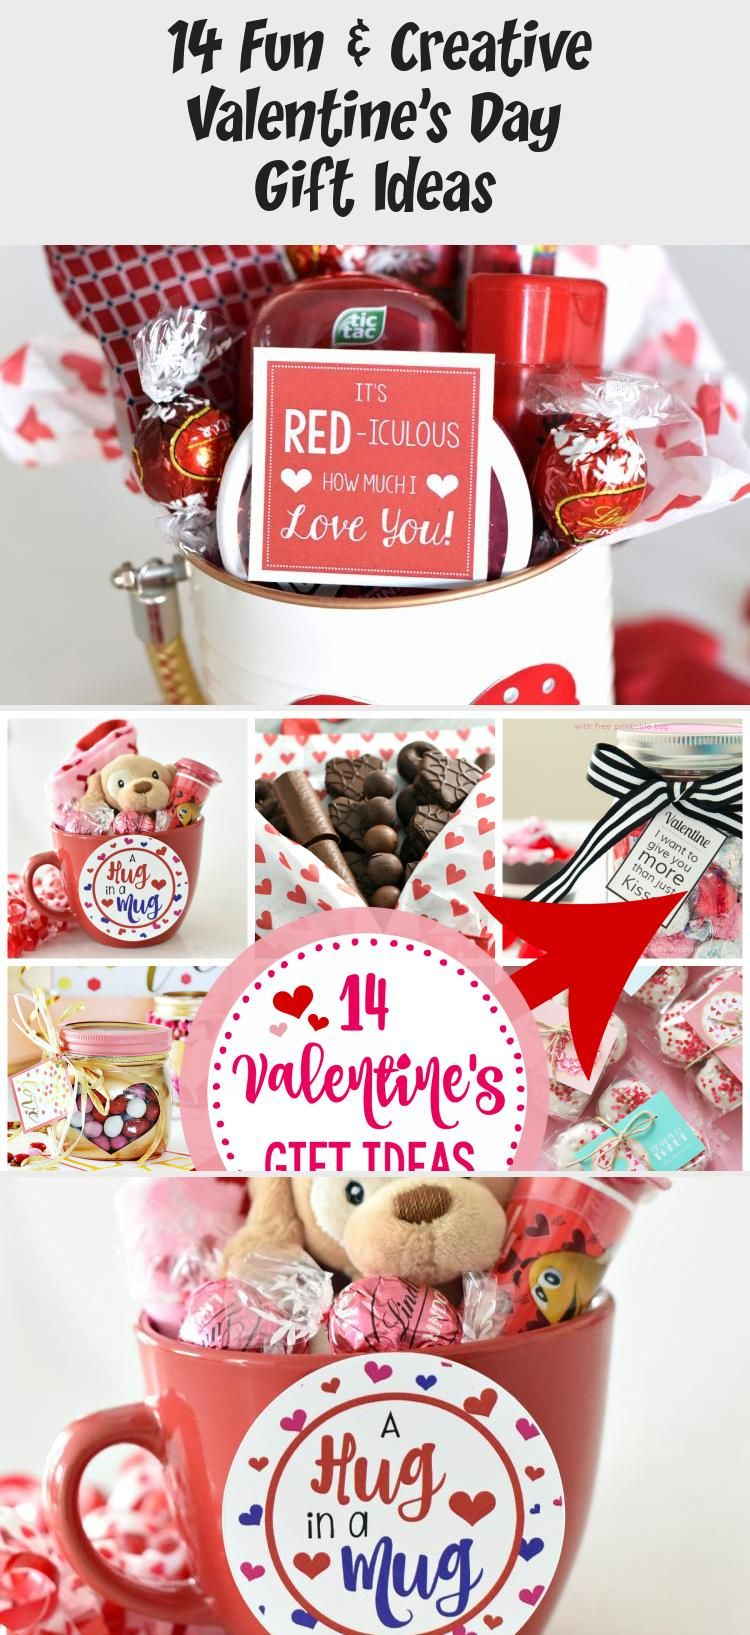 14 Fun Creative Valentine S Day Gift Ideas In 2020 Creative Valentines Gift Creative Valentines Valentine Day Gifts